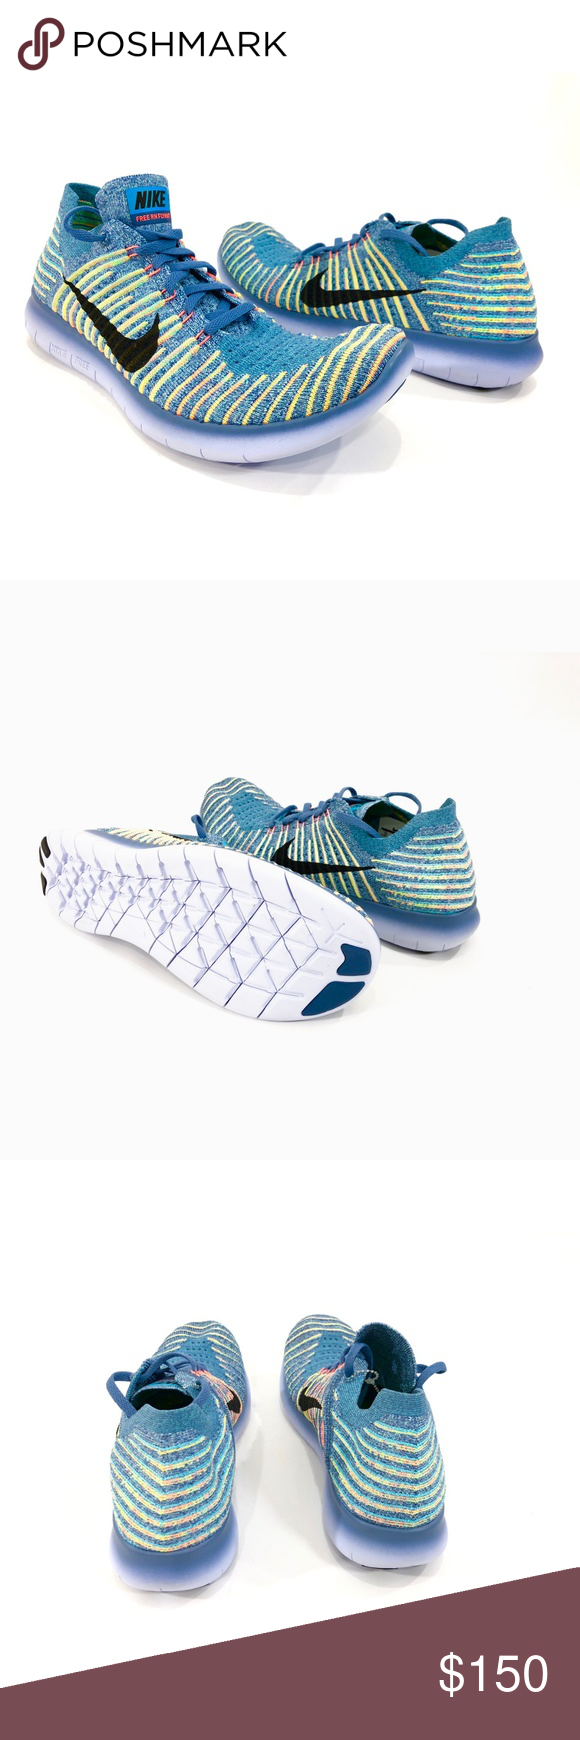 Nike Free RN Flyknit Womens Trainning Running Shoe NIKE 831070-405 Nike  Free RN Flyknit Women s running shoes Size 12 Multi-Color Low top New  without box ... 1d71914b50